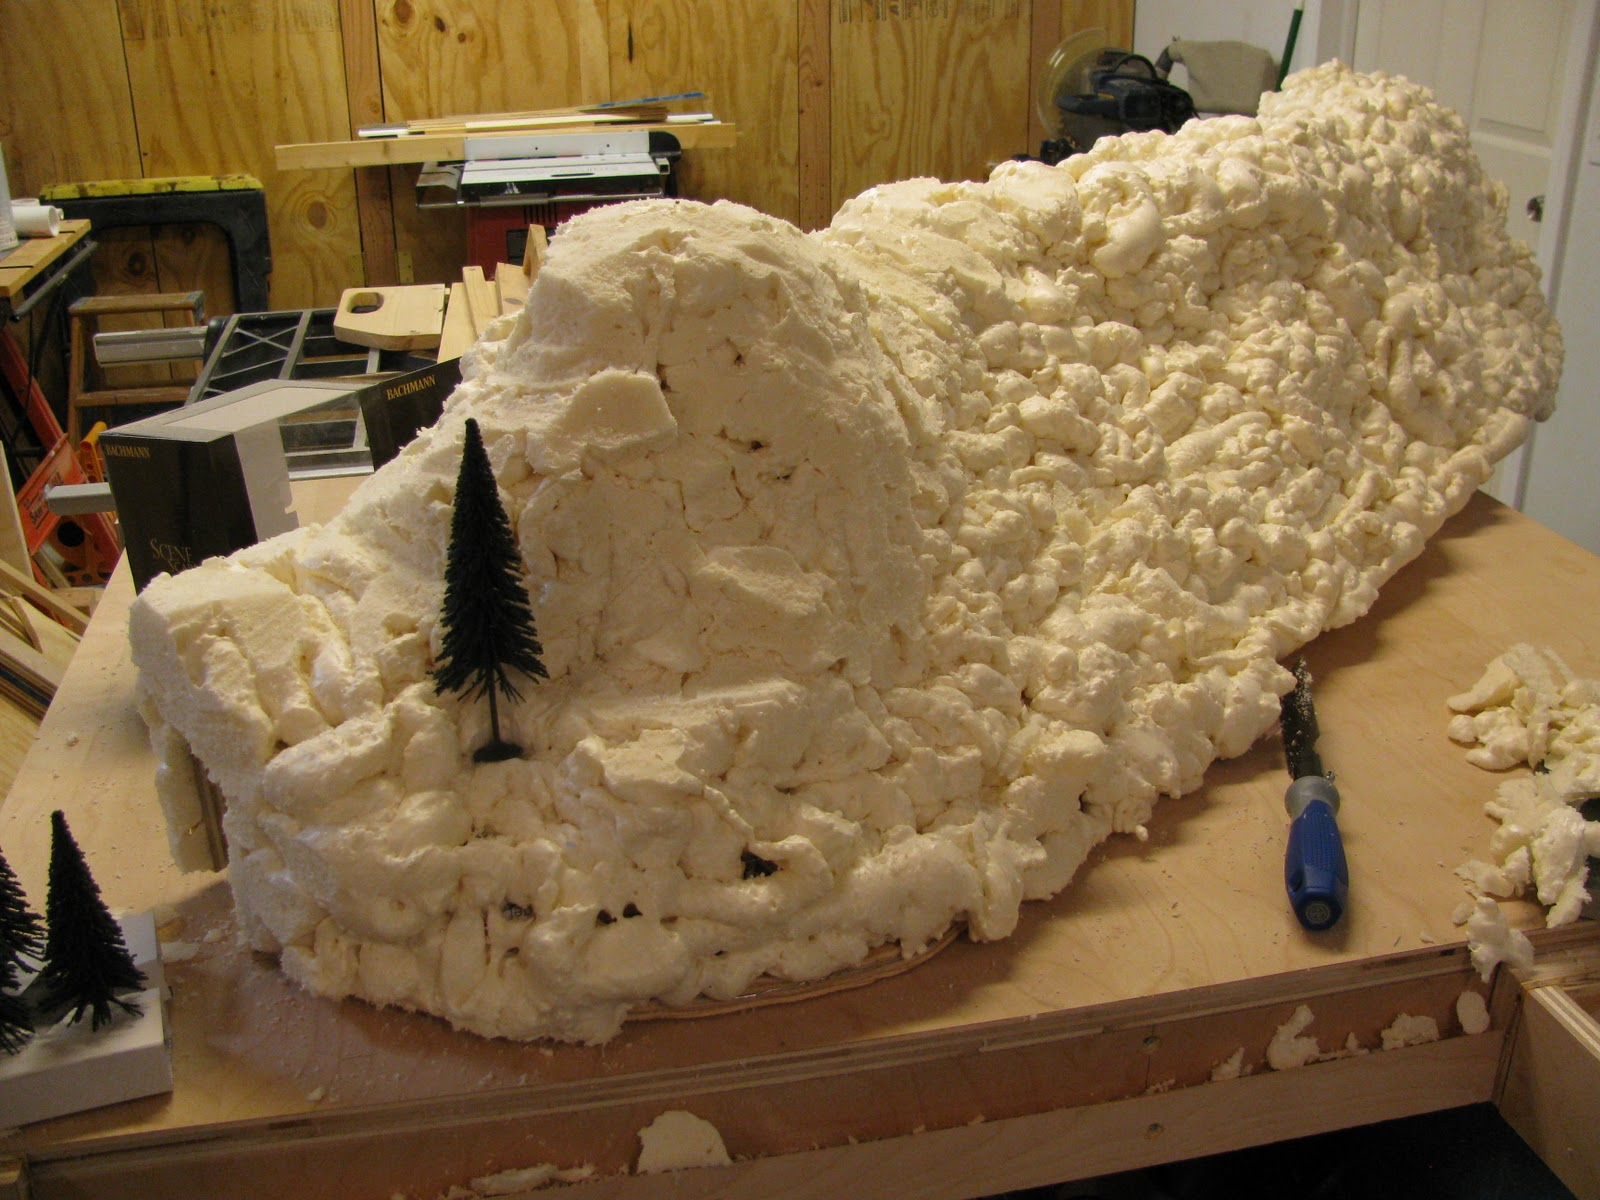 Sanity with five kids: shaping mountains